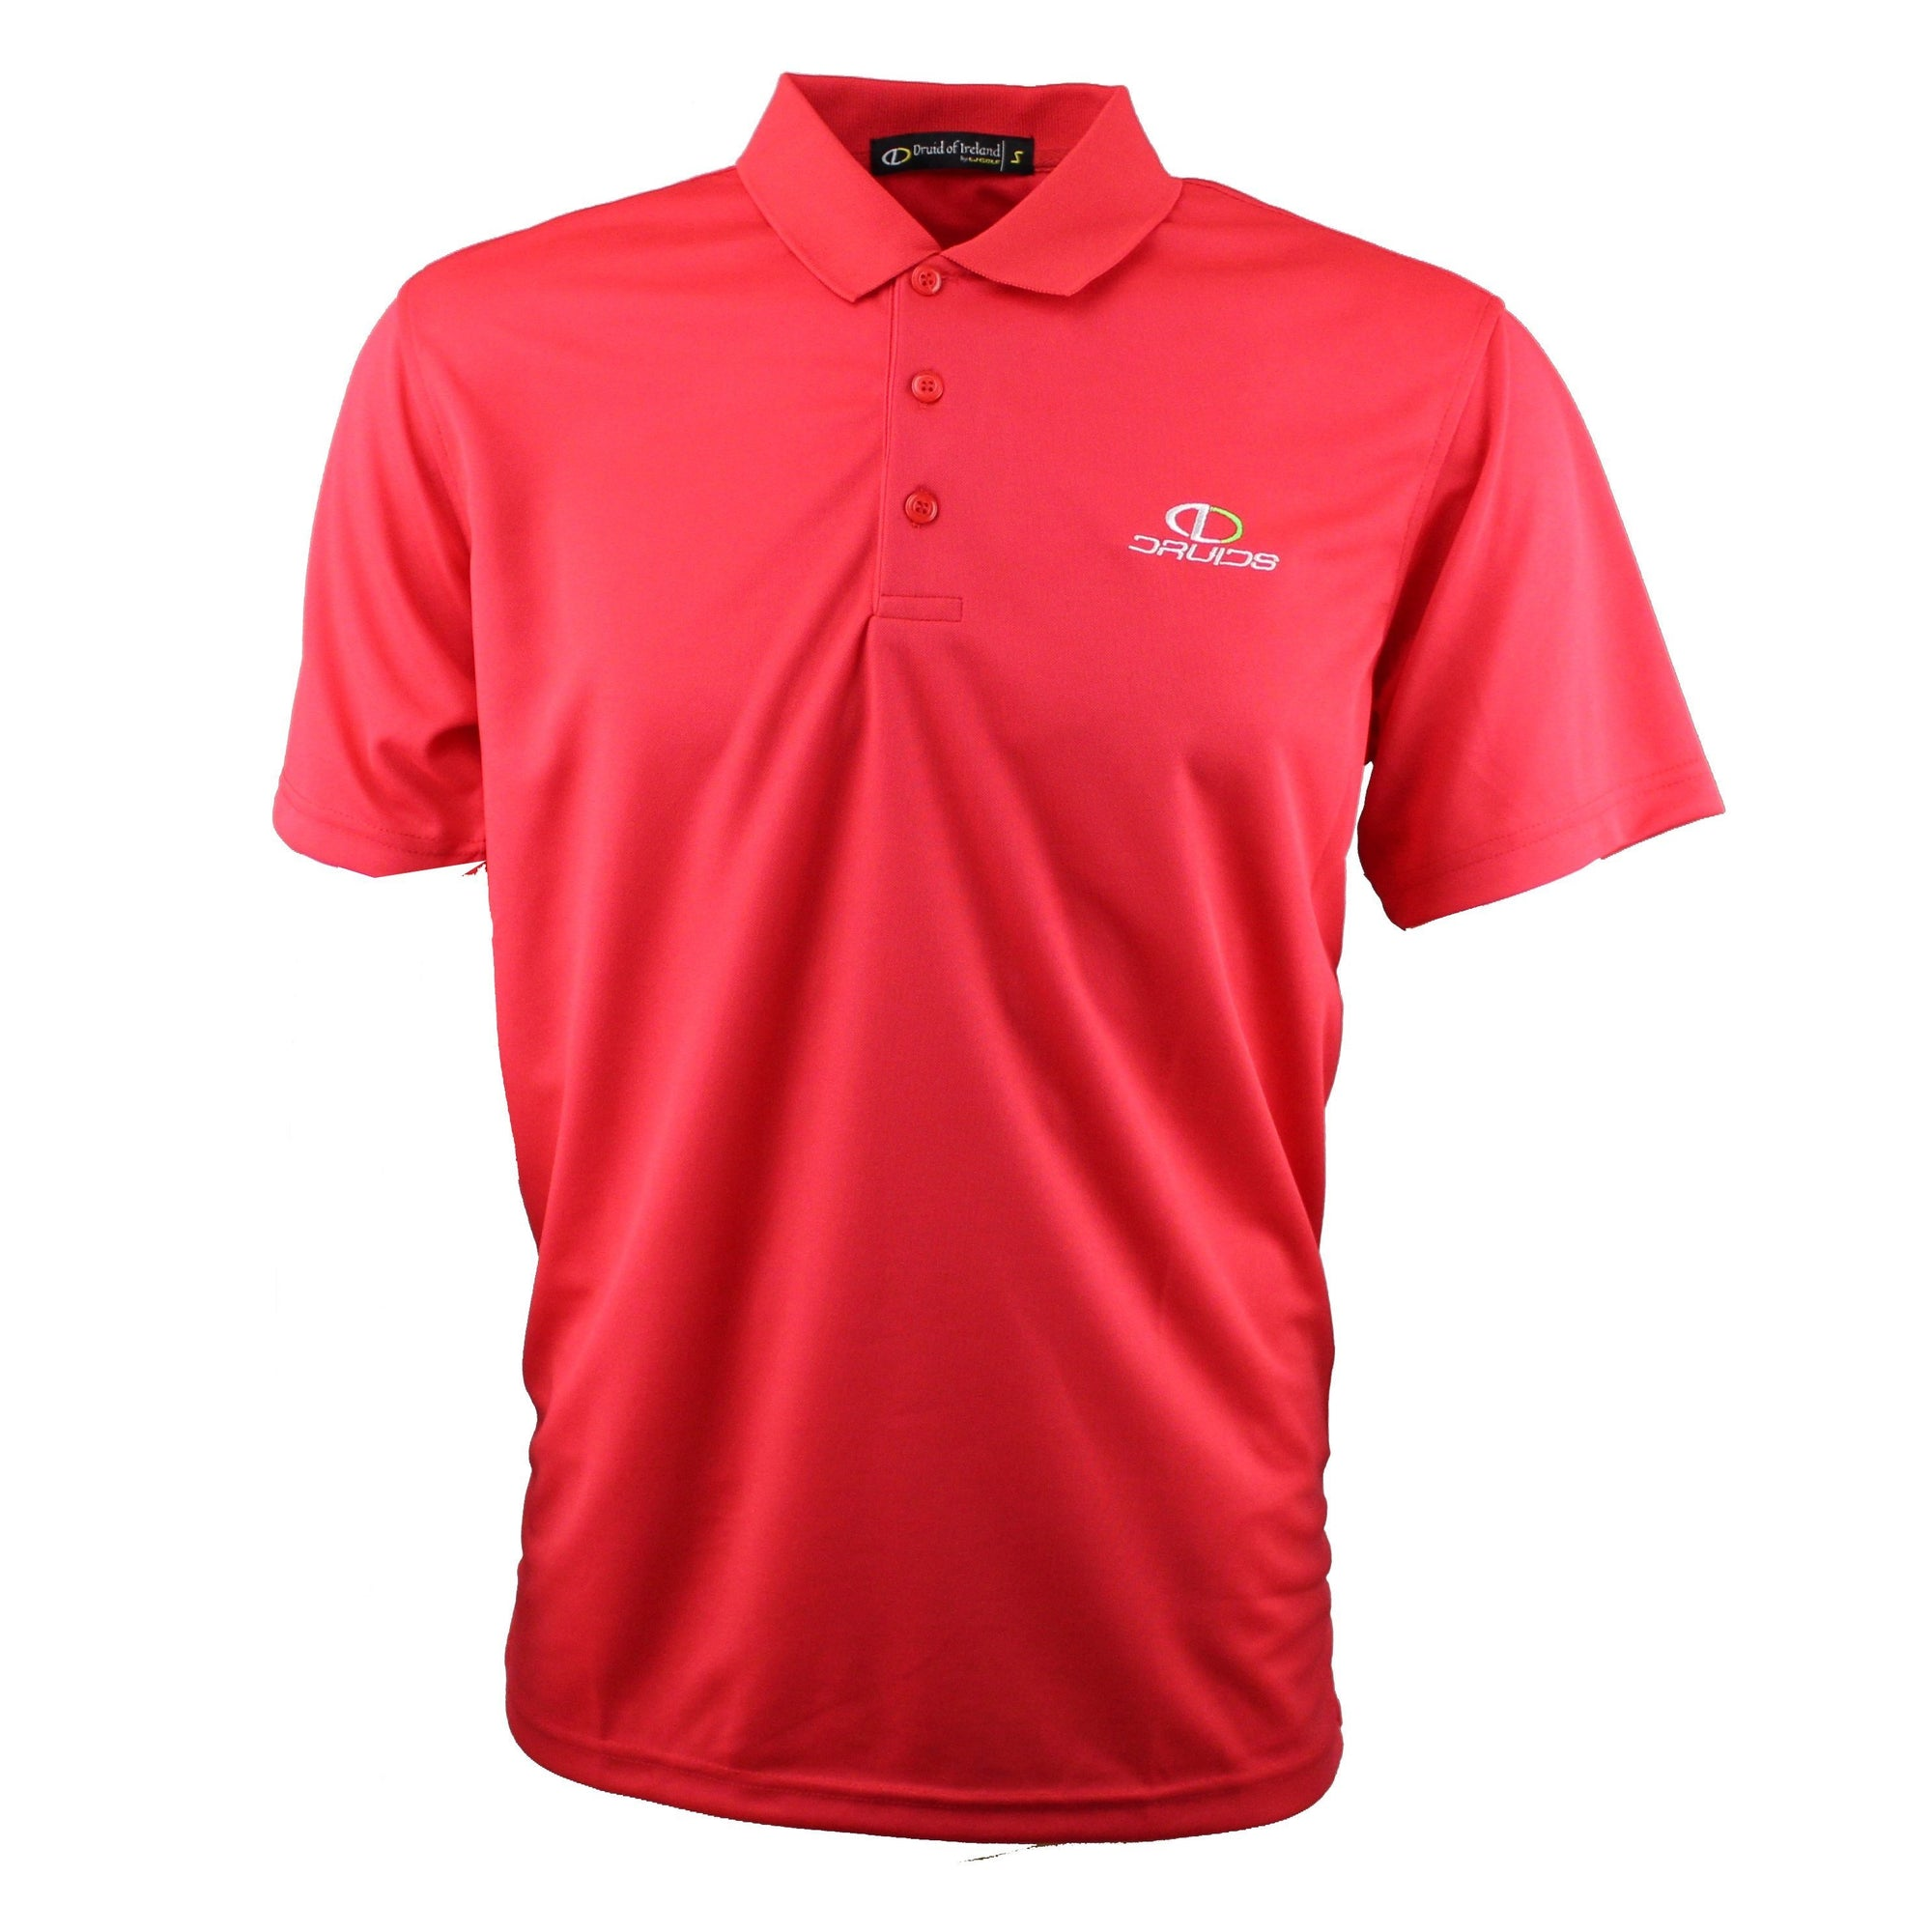 Druids Golf - Mens Performance Polo (Red)